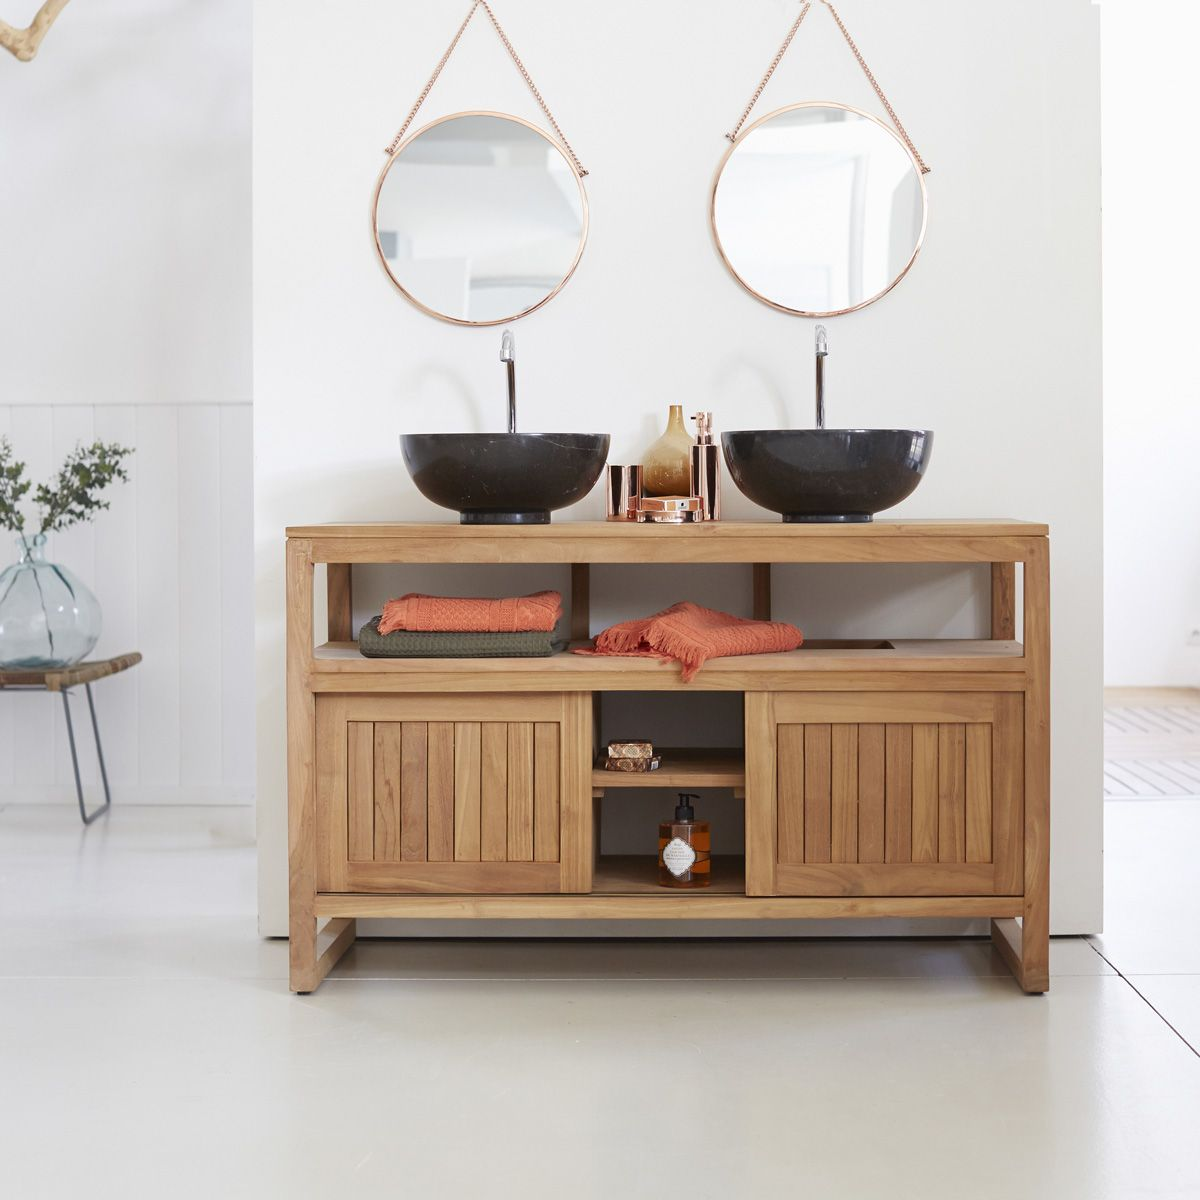 with good designs remodel furniture cabinetry teak about bathroom cabinet innovative